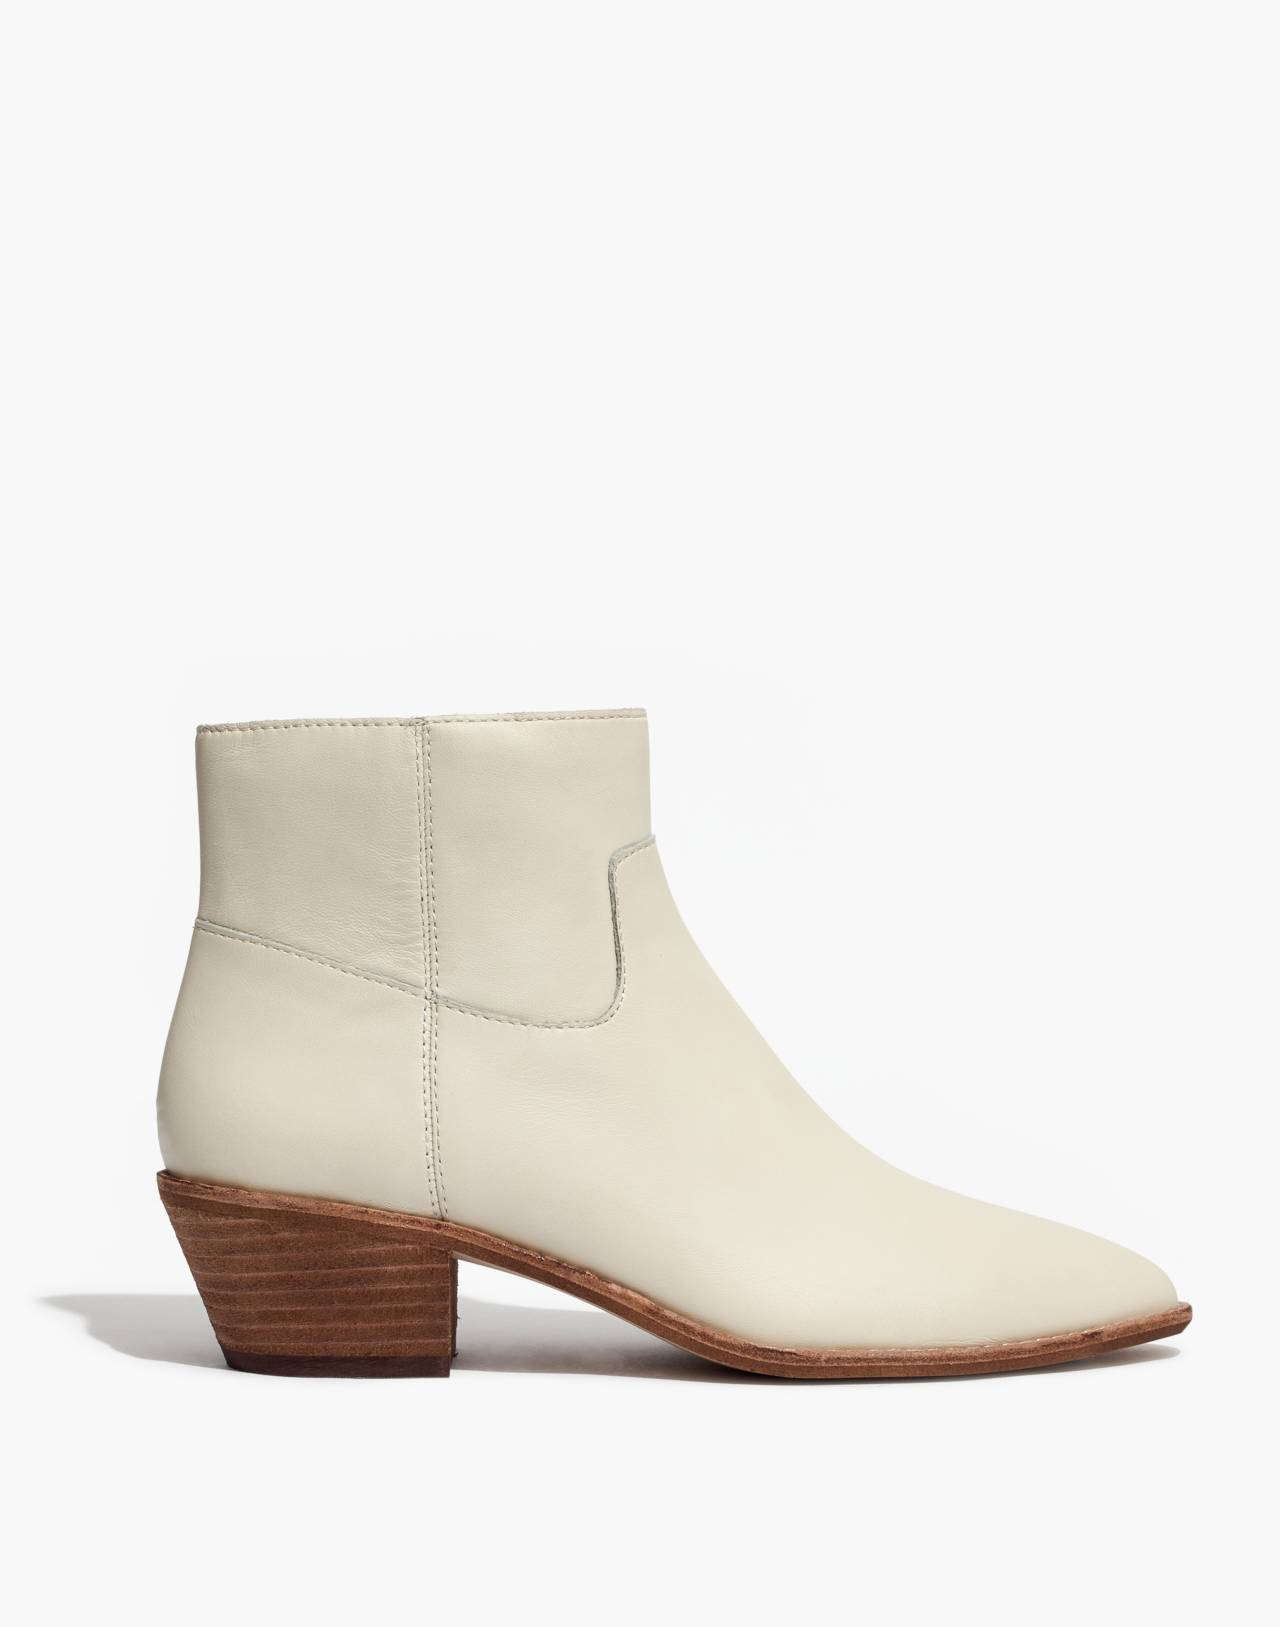 The Charley Boot in Leather in vintage canvas image 3